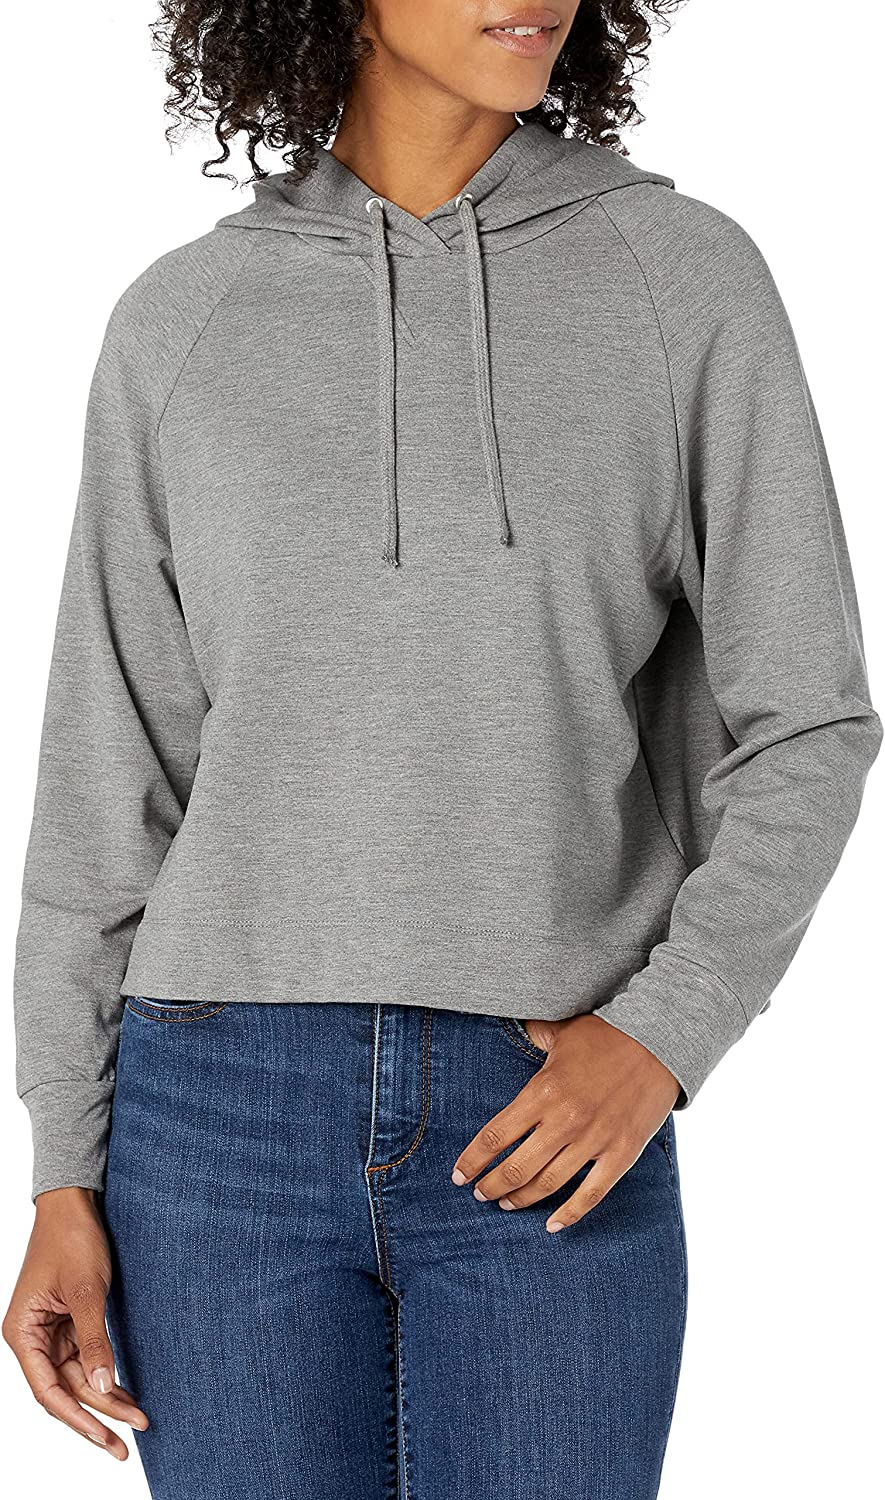 Majestic Filatures Women's French Terry Hoodie